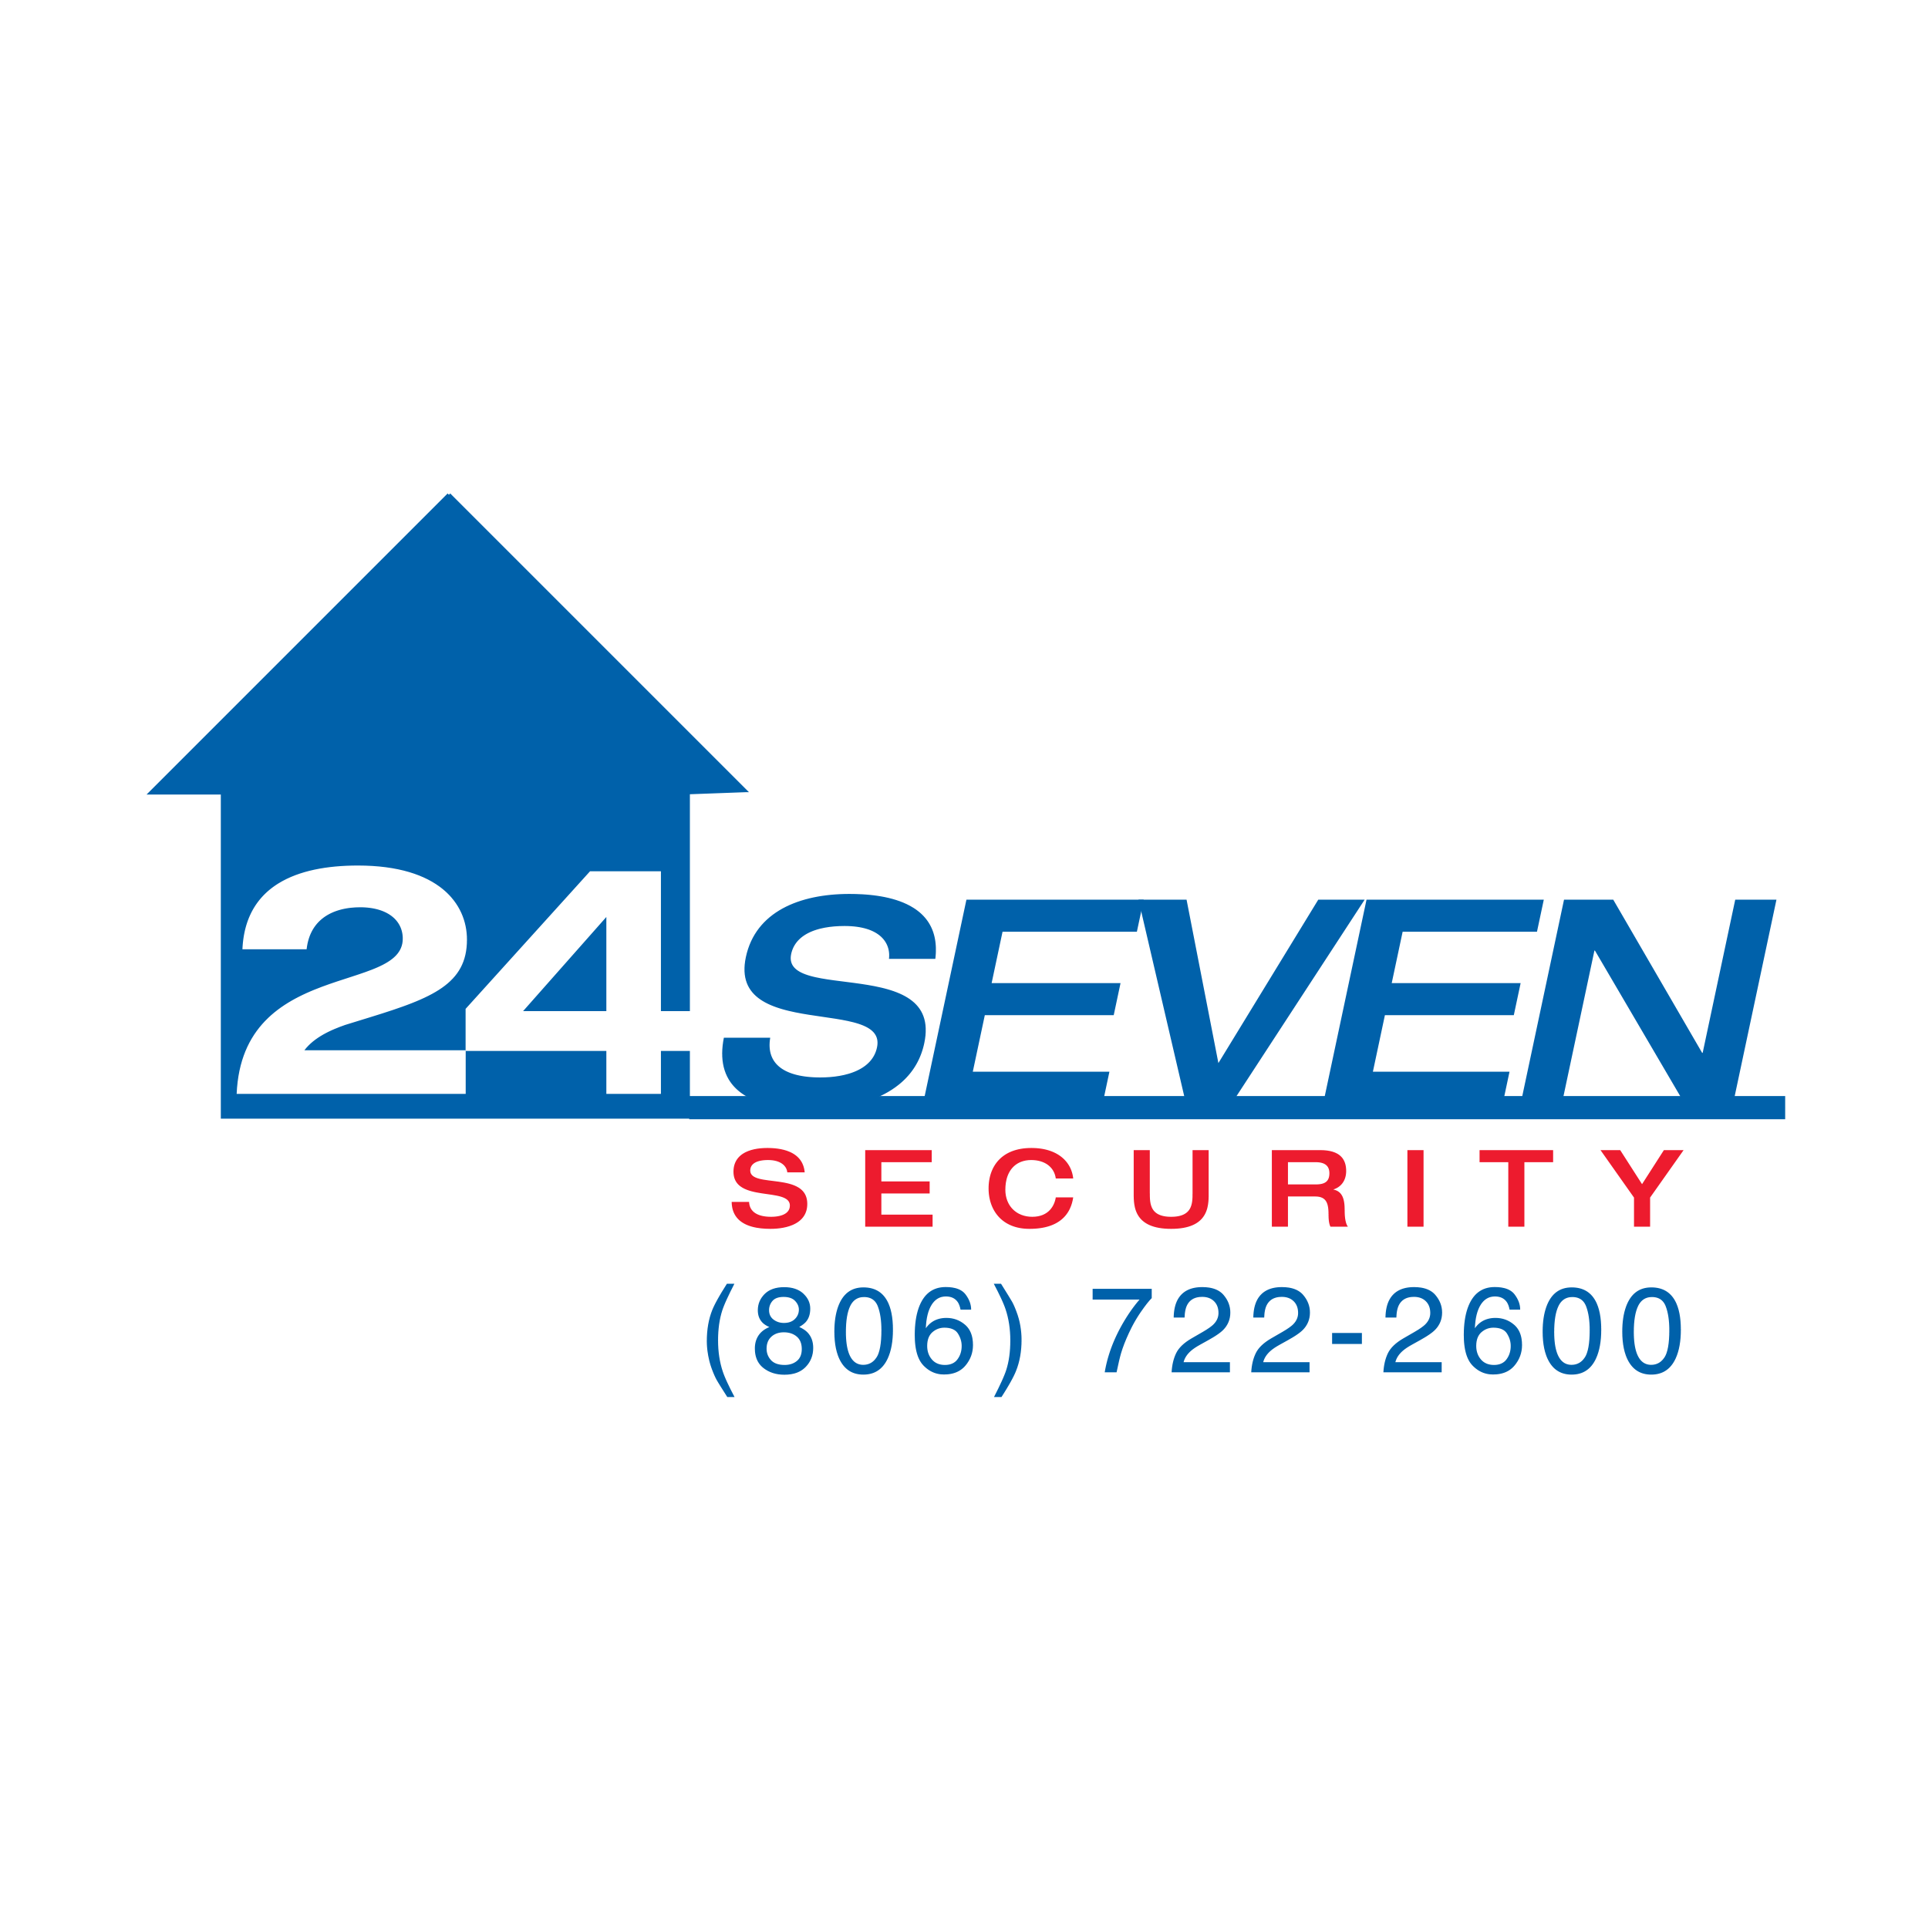 24 Seven Security